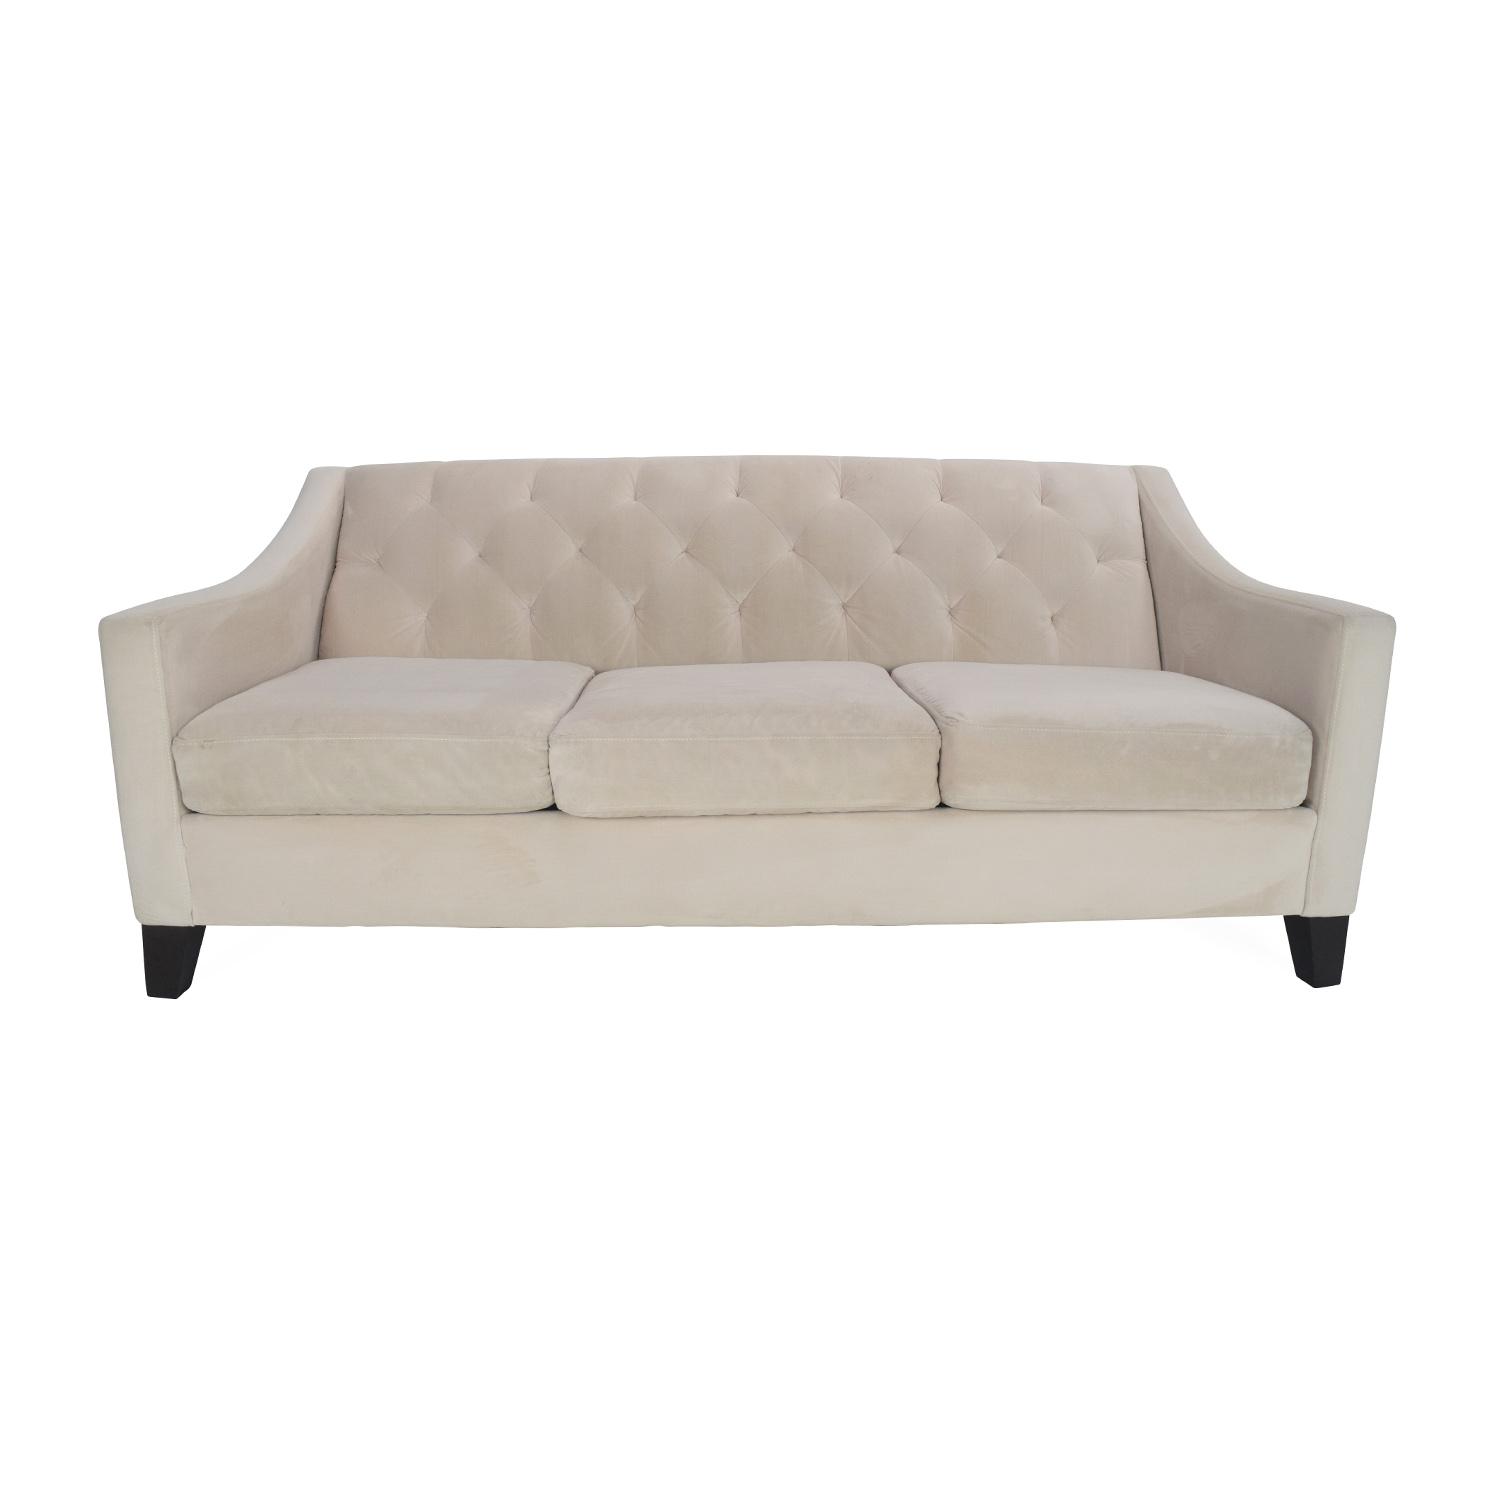 Max Home Furniture Macyu0027s Chloe Tufted Sofa On ...